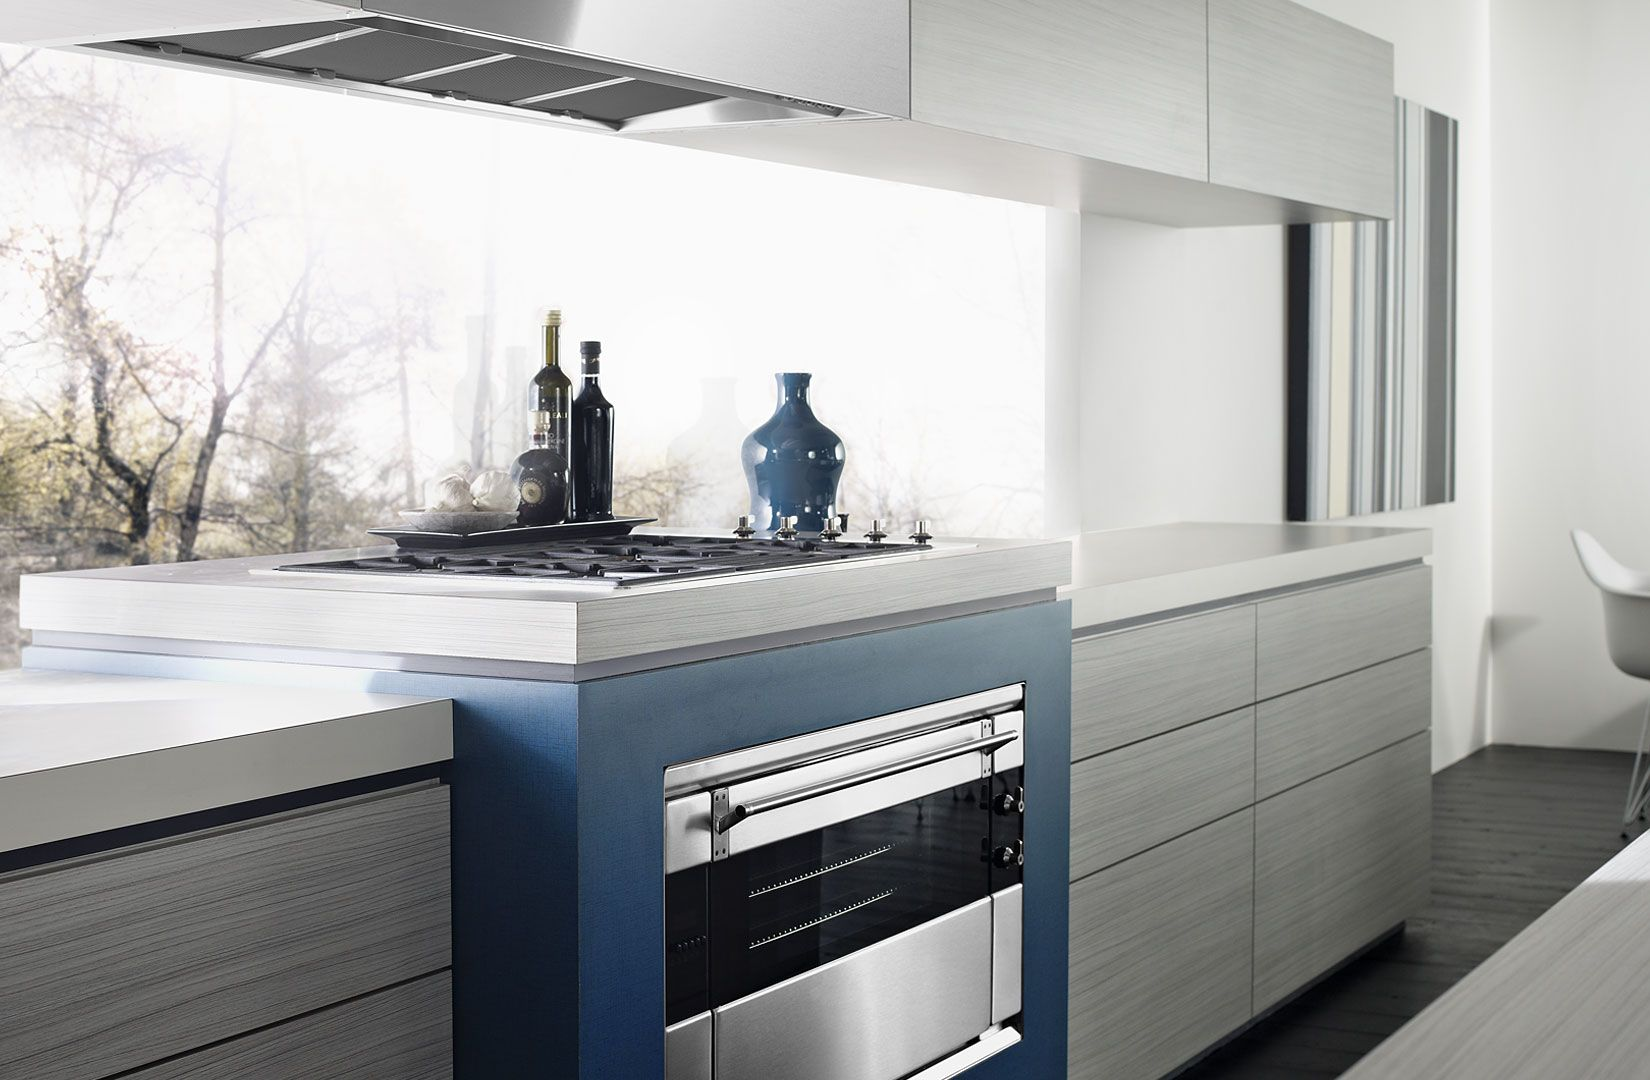 LIght/white benchtop, drawers with no handles, glass splashback ...